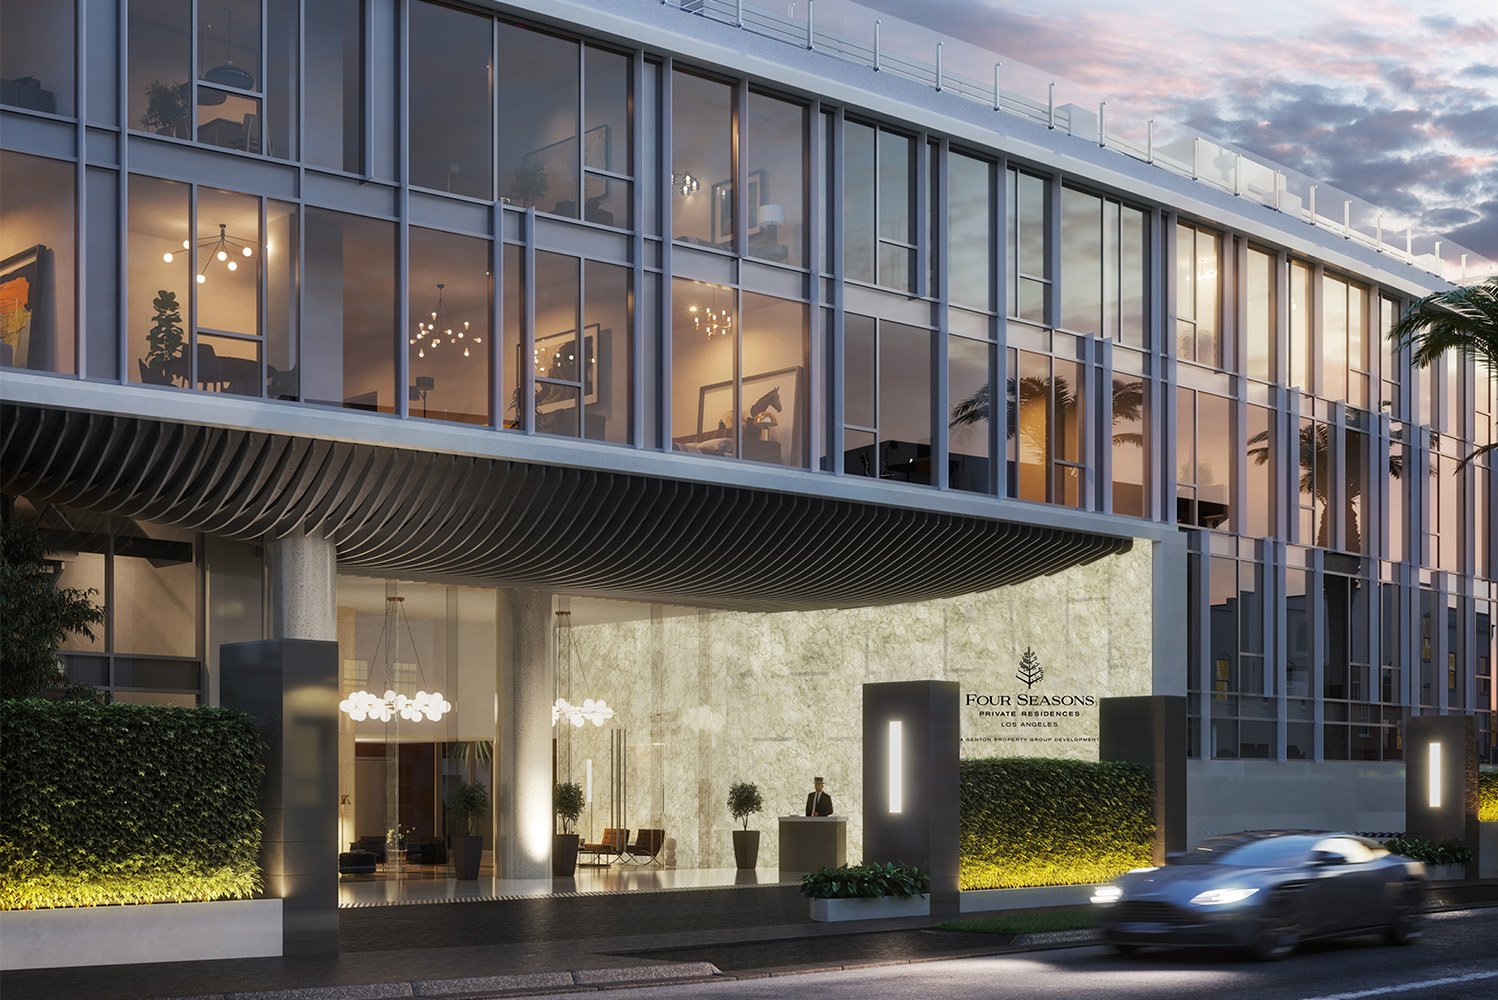 Four Seasons Hotels and Resorts is constructing its first residential project in Los Angeles, developed in partnership with Genton Development Company.